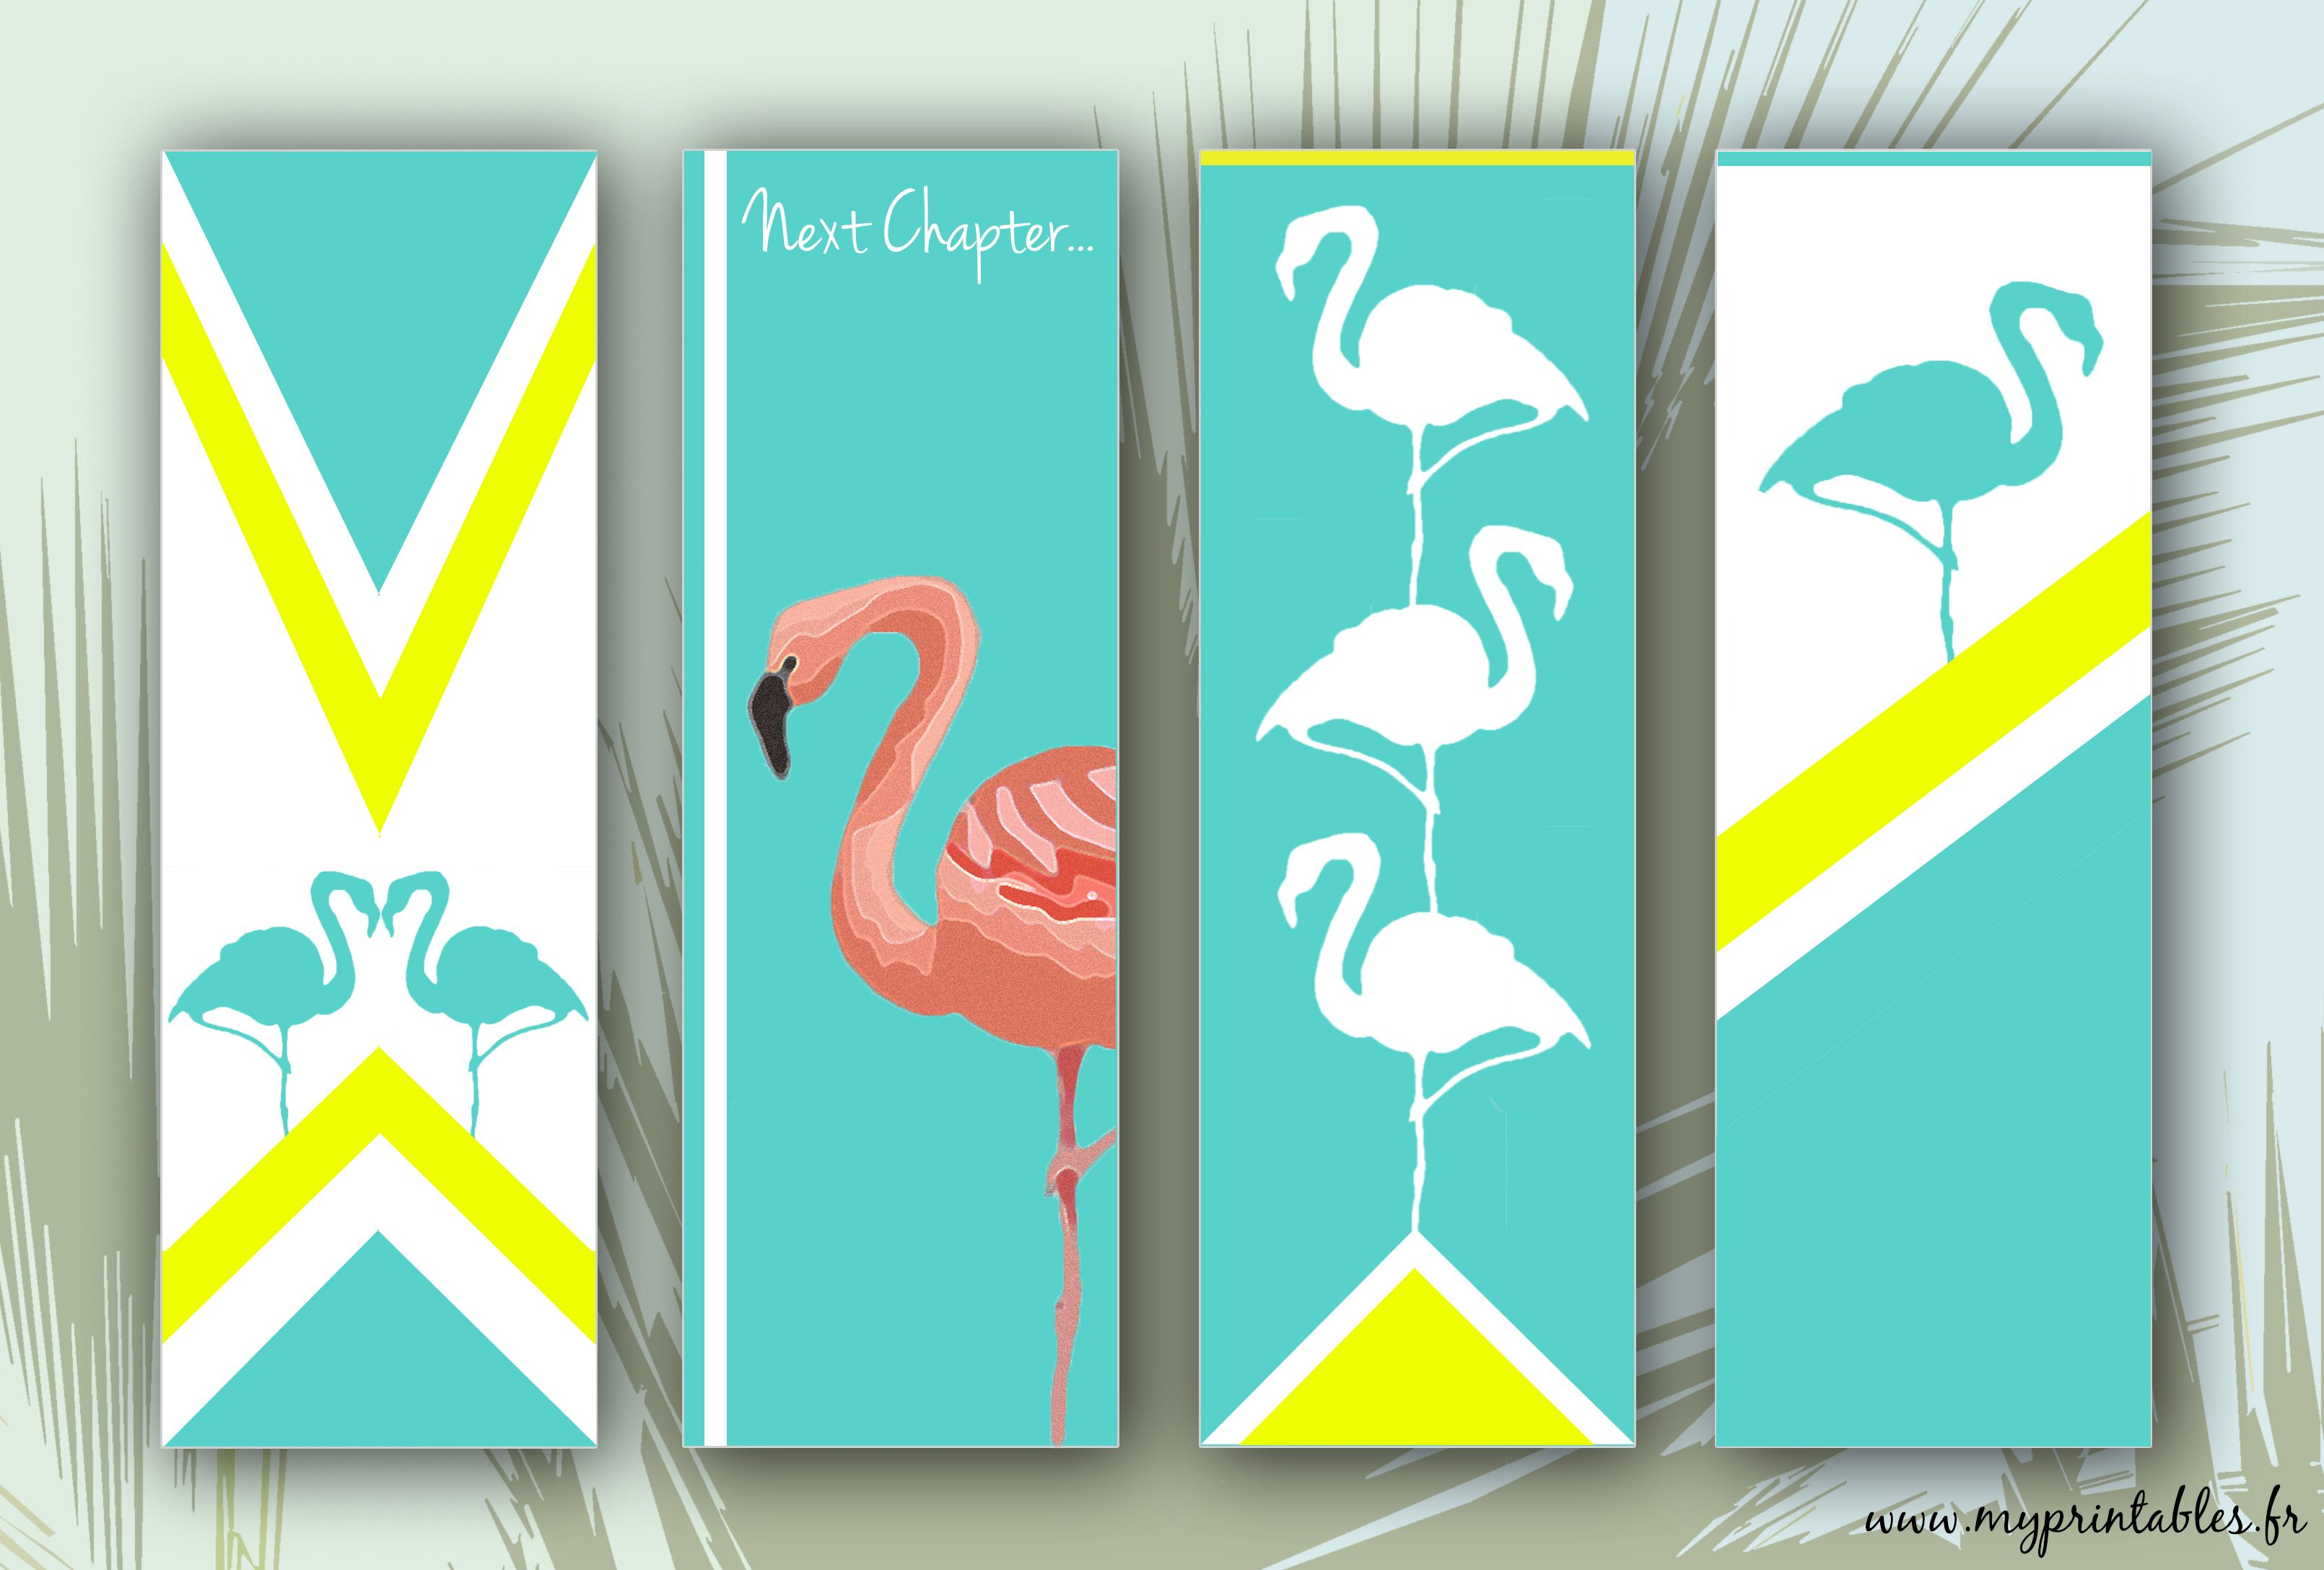 image regarding Bookmarks Printable called Free of charge PRINTABLE - Flamingo Bookmarks - Marques-web site Flamant